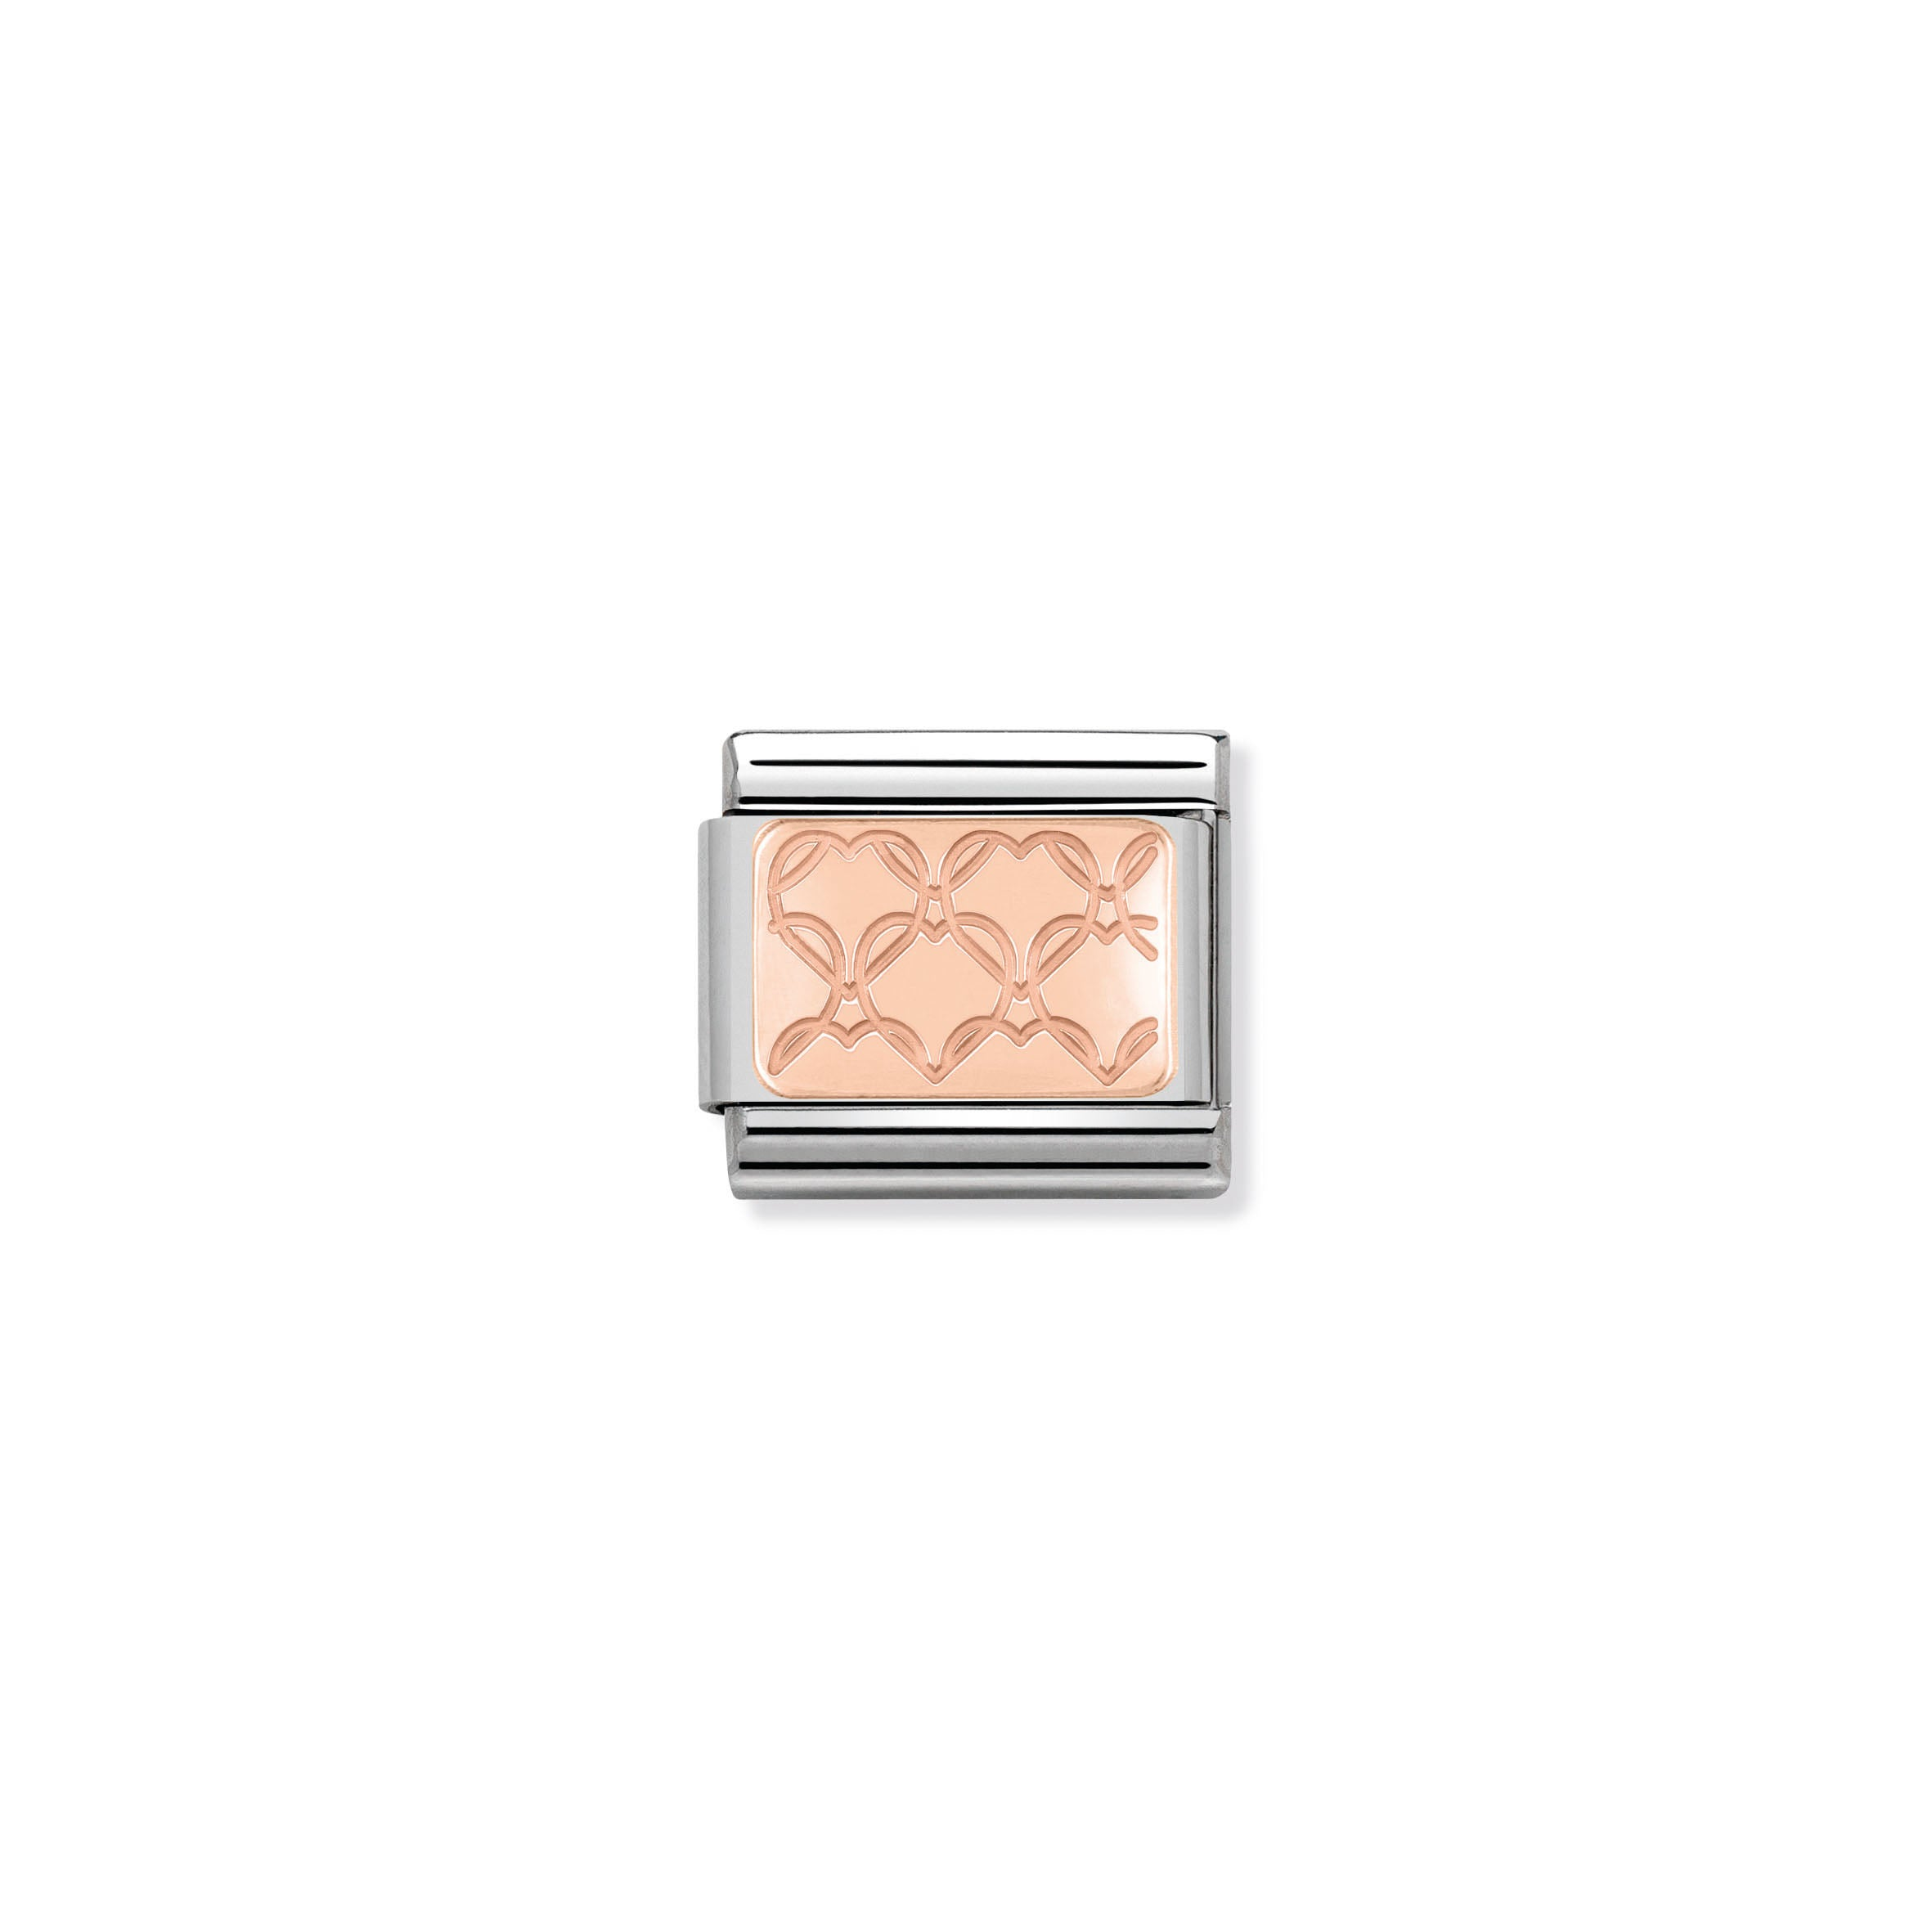 NOMINATION - Composable 430101 07 COMP Classic ROSE GOLD PLATE st/st, 9ct rose gold (Hearts)